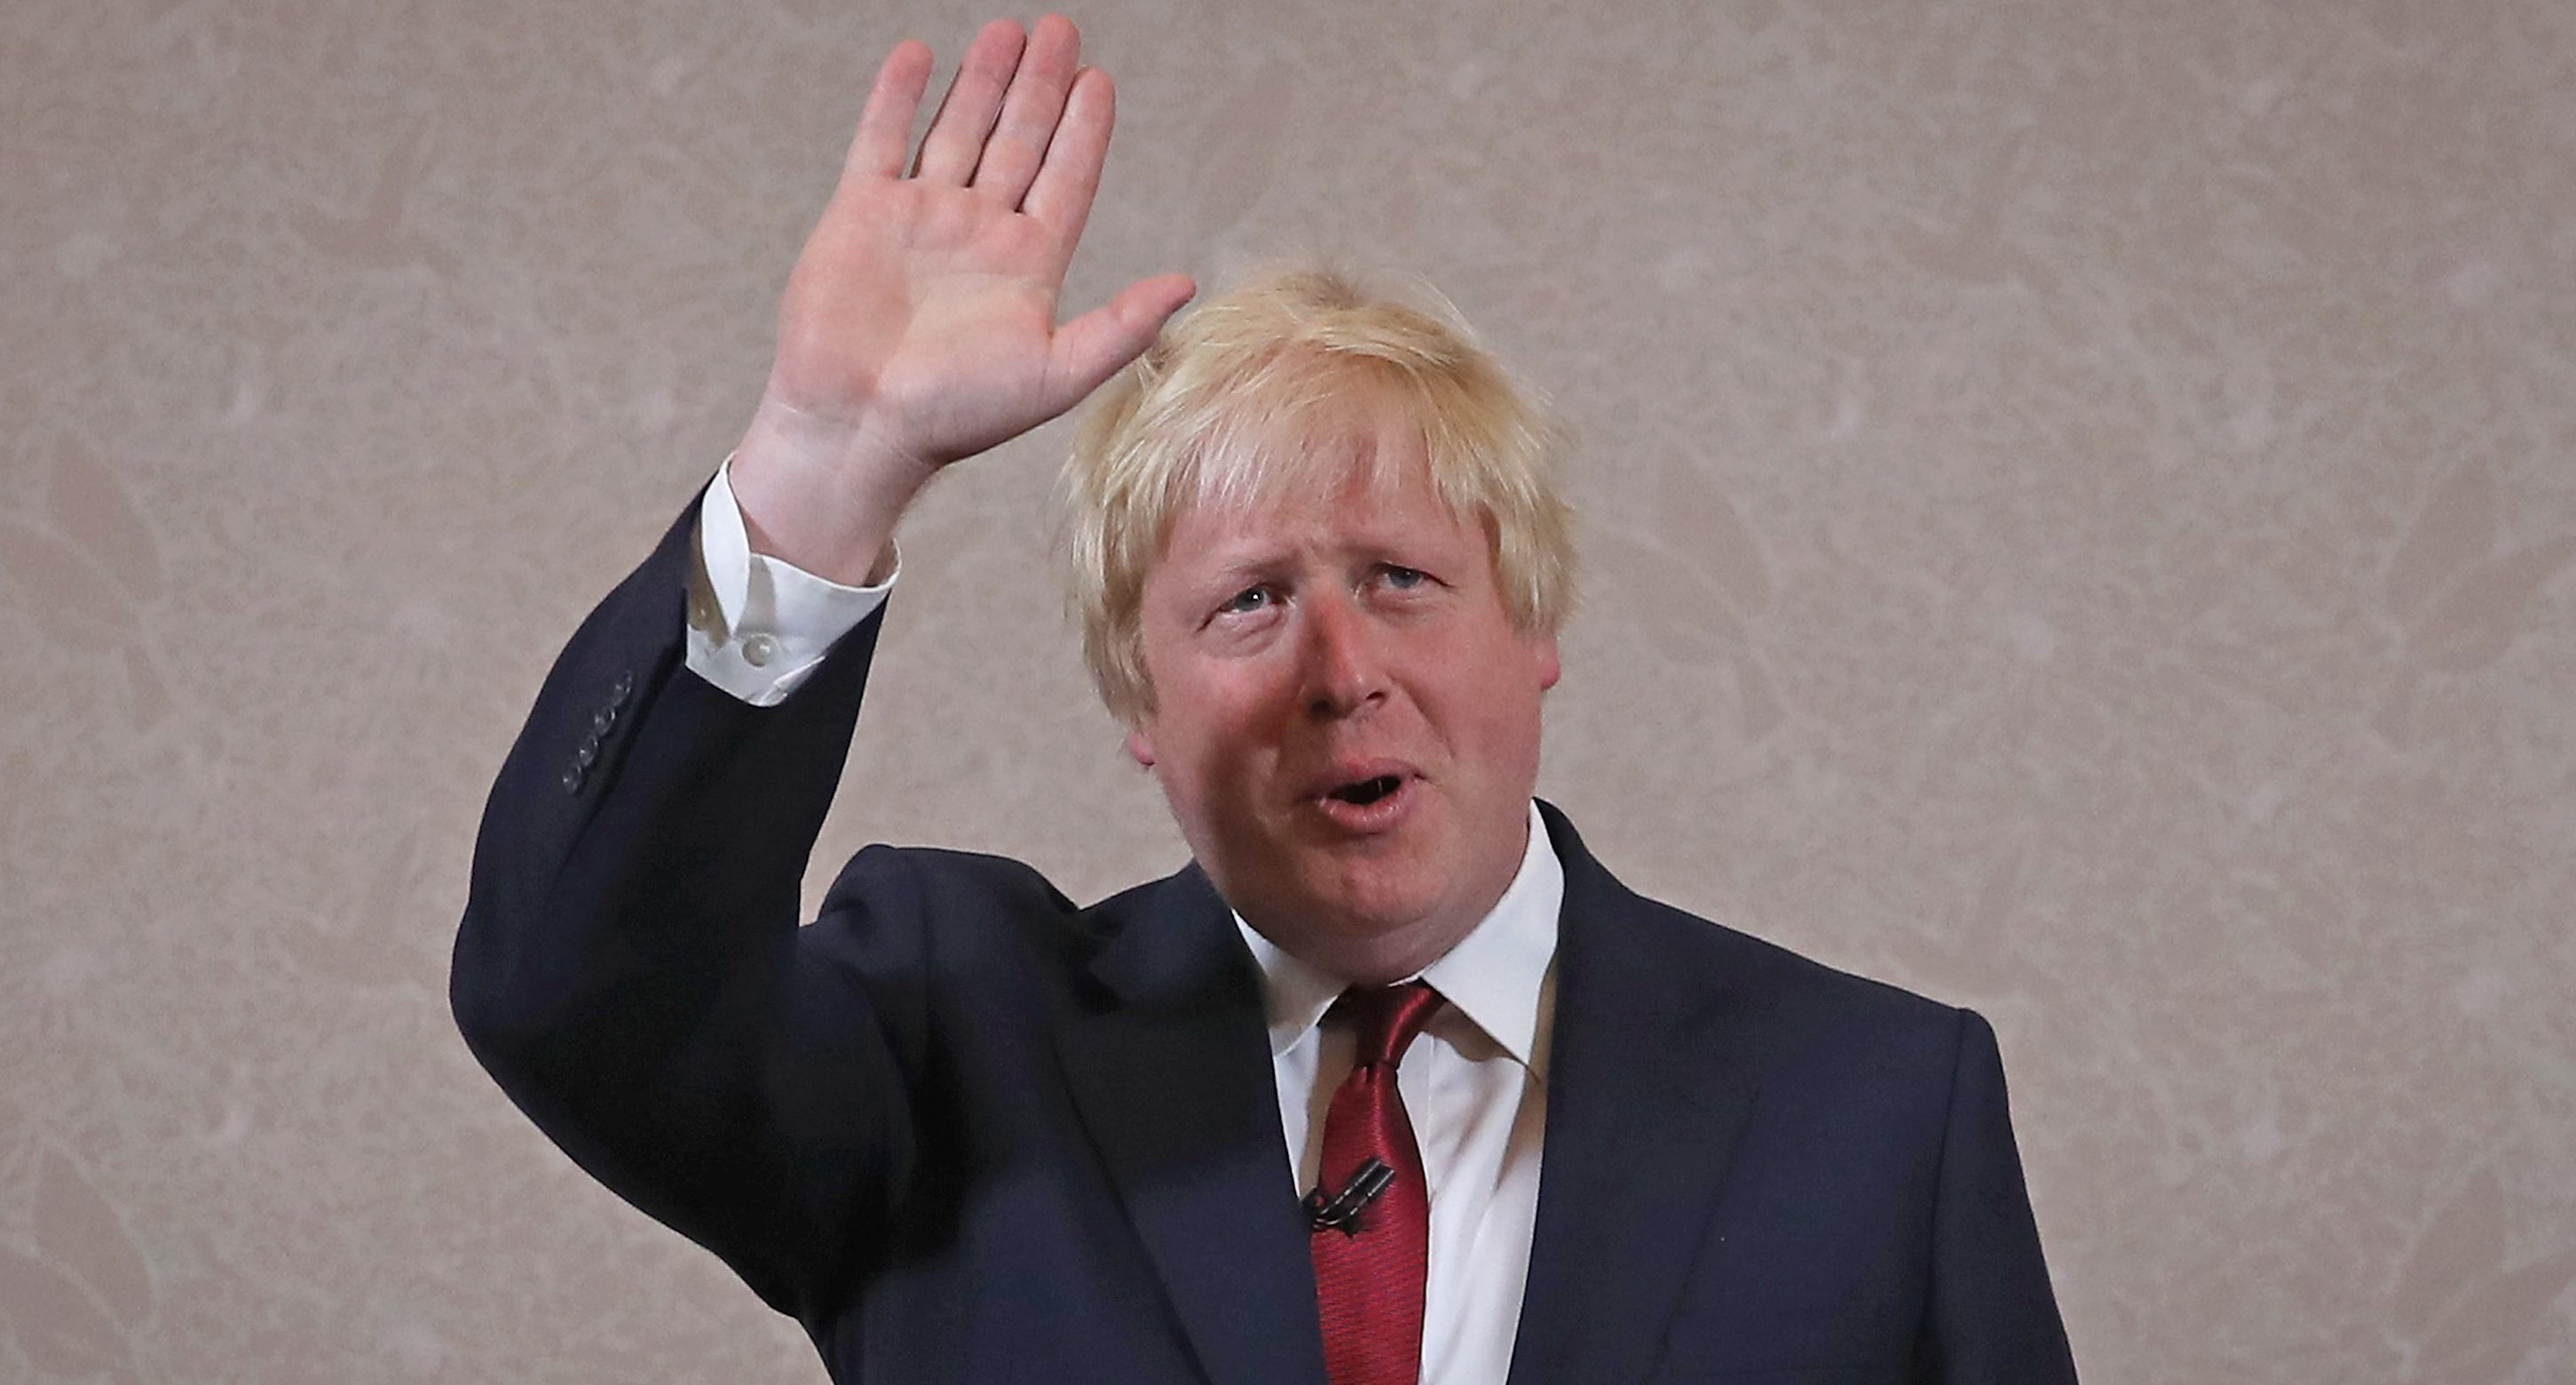 Not a wave goodbye - expect Boris to be back